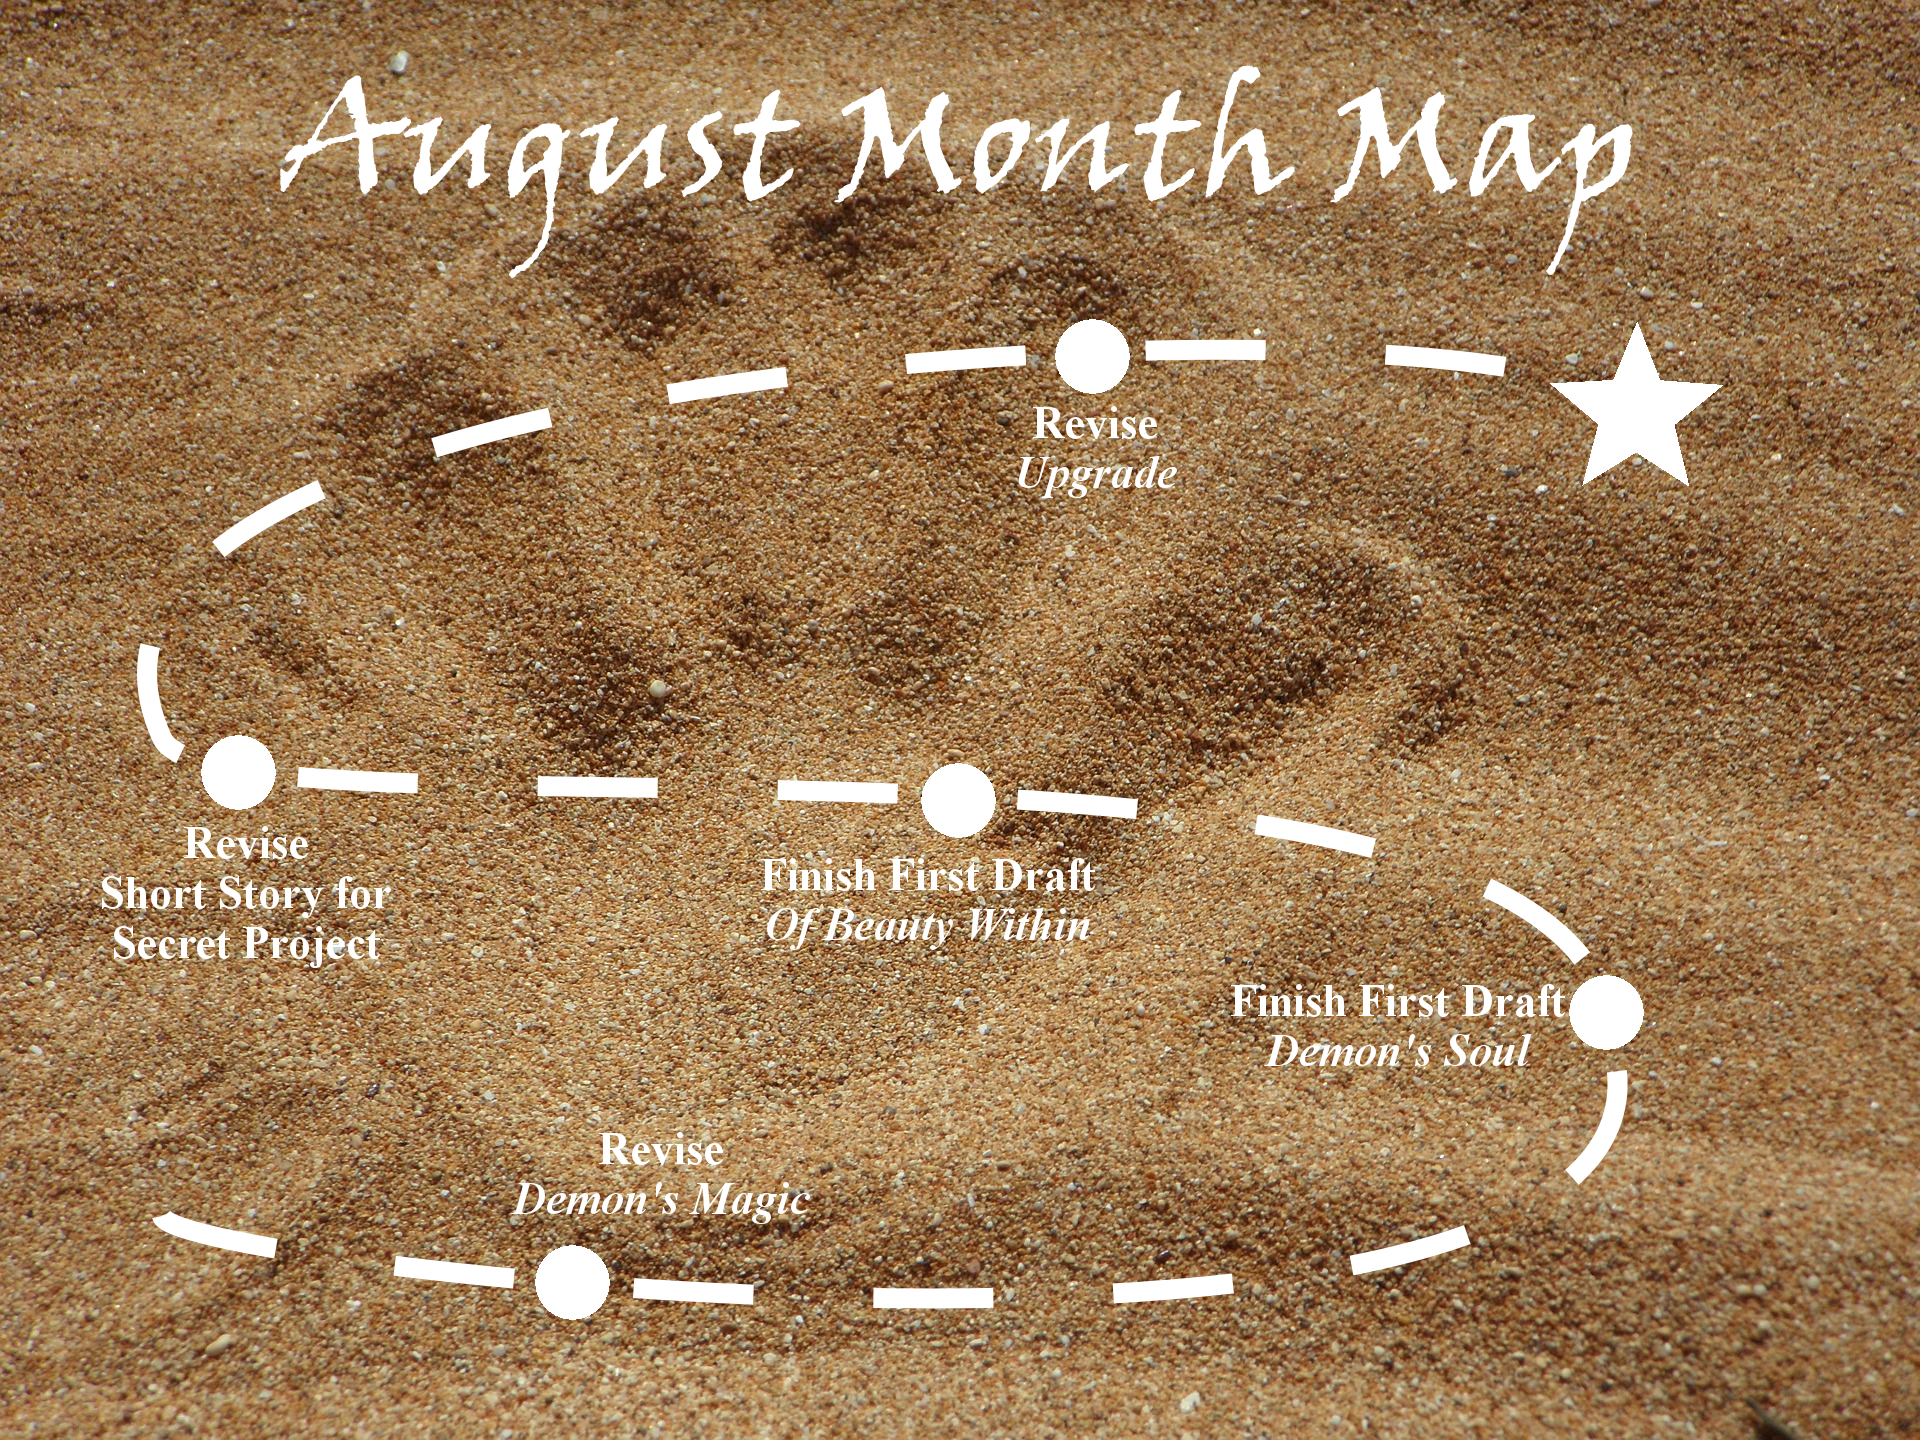 Ensign's Log, Entry 27: August Month Map